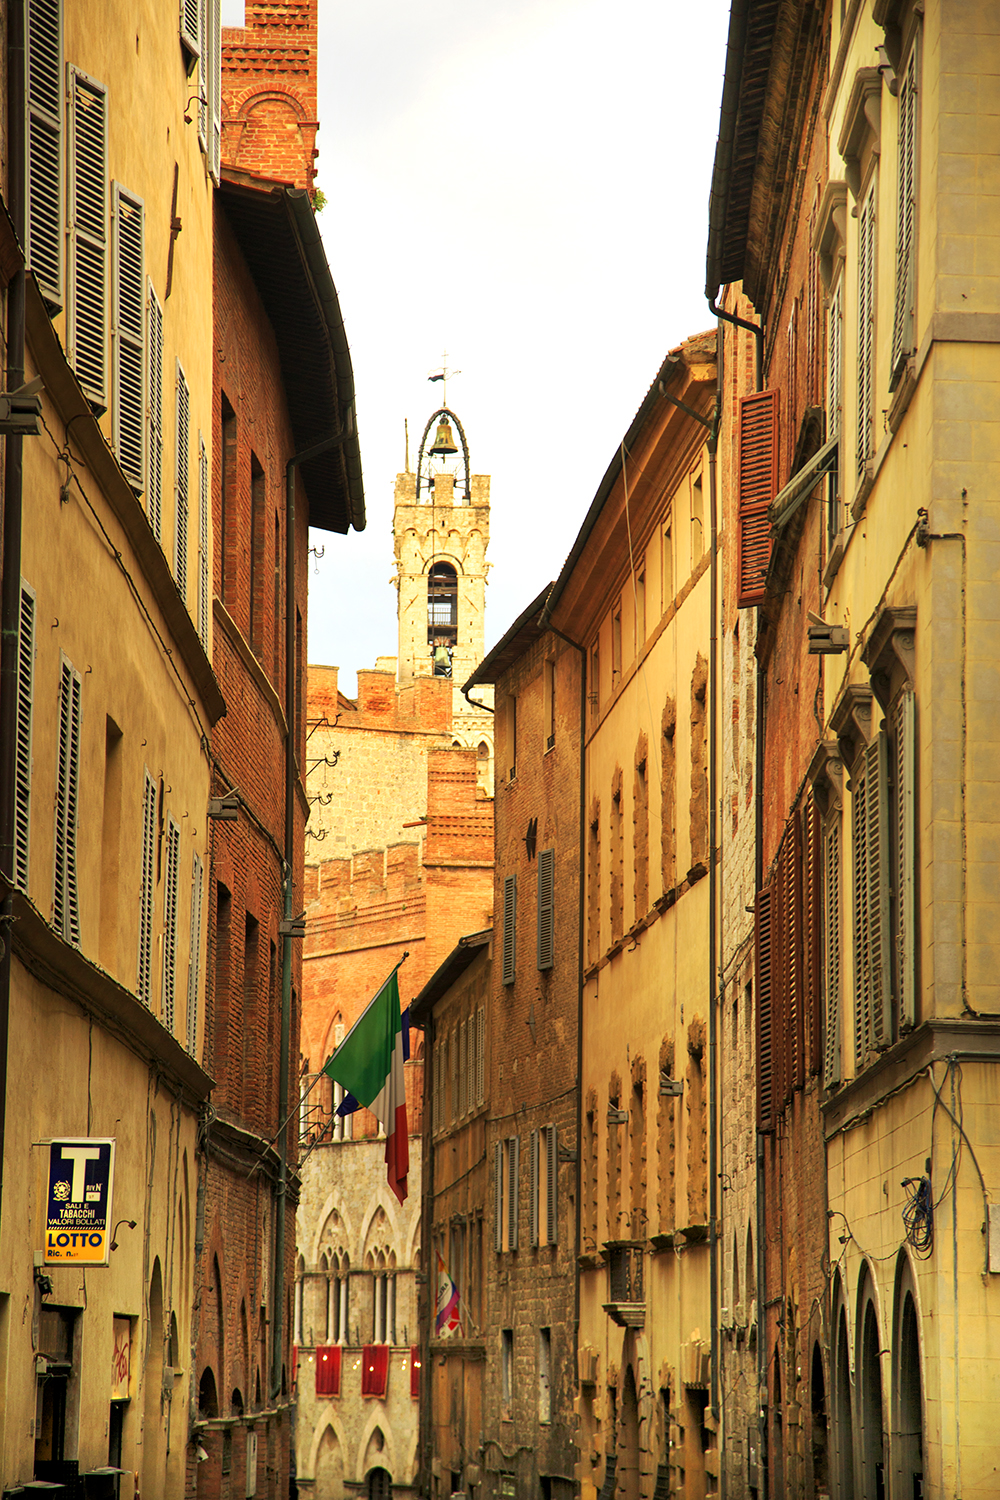 Suffusing My Senses In Siena - Image 14